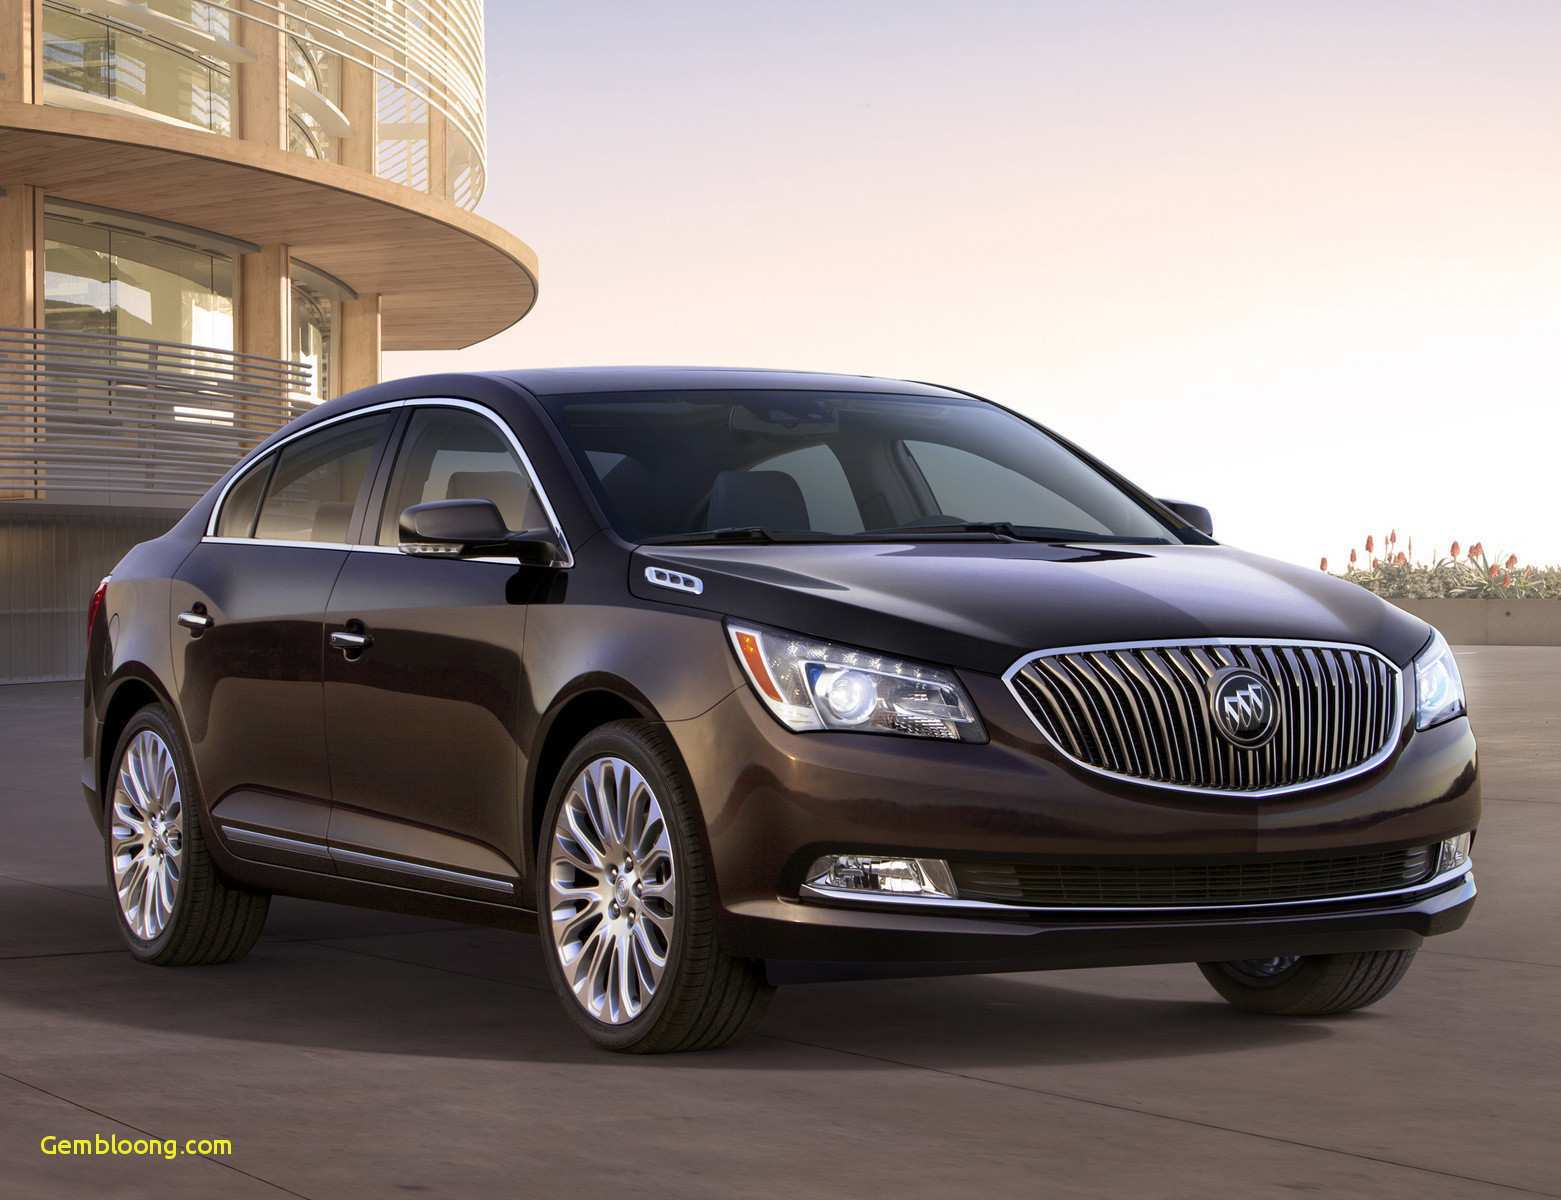 74 All New 2019 Buick Park Avenue Images